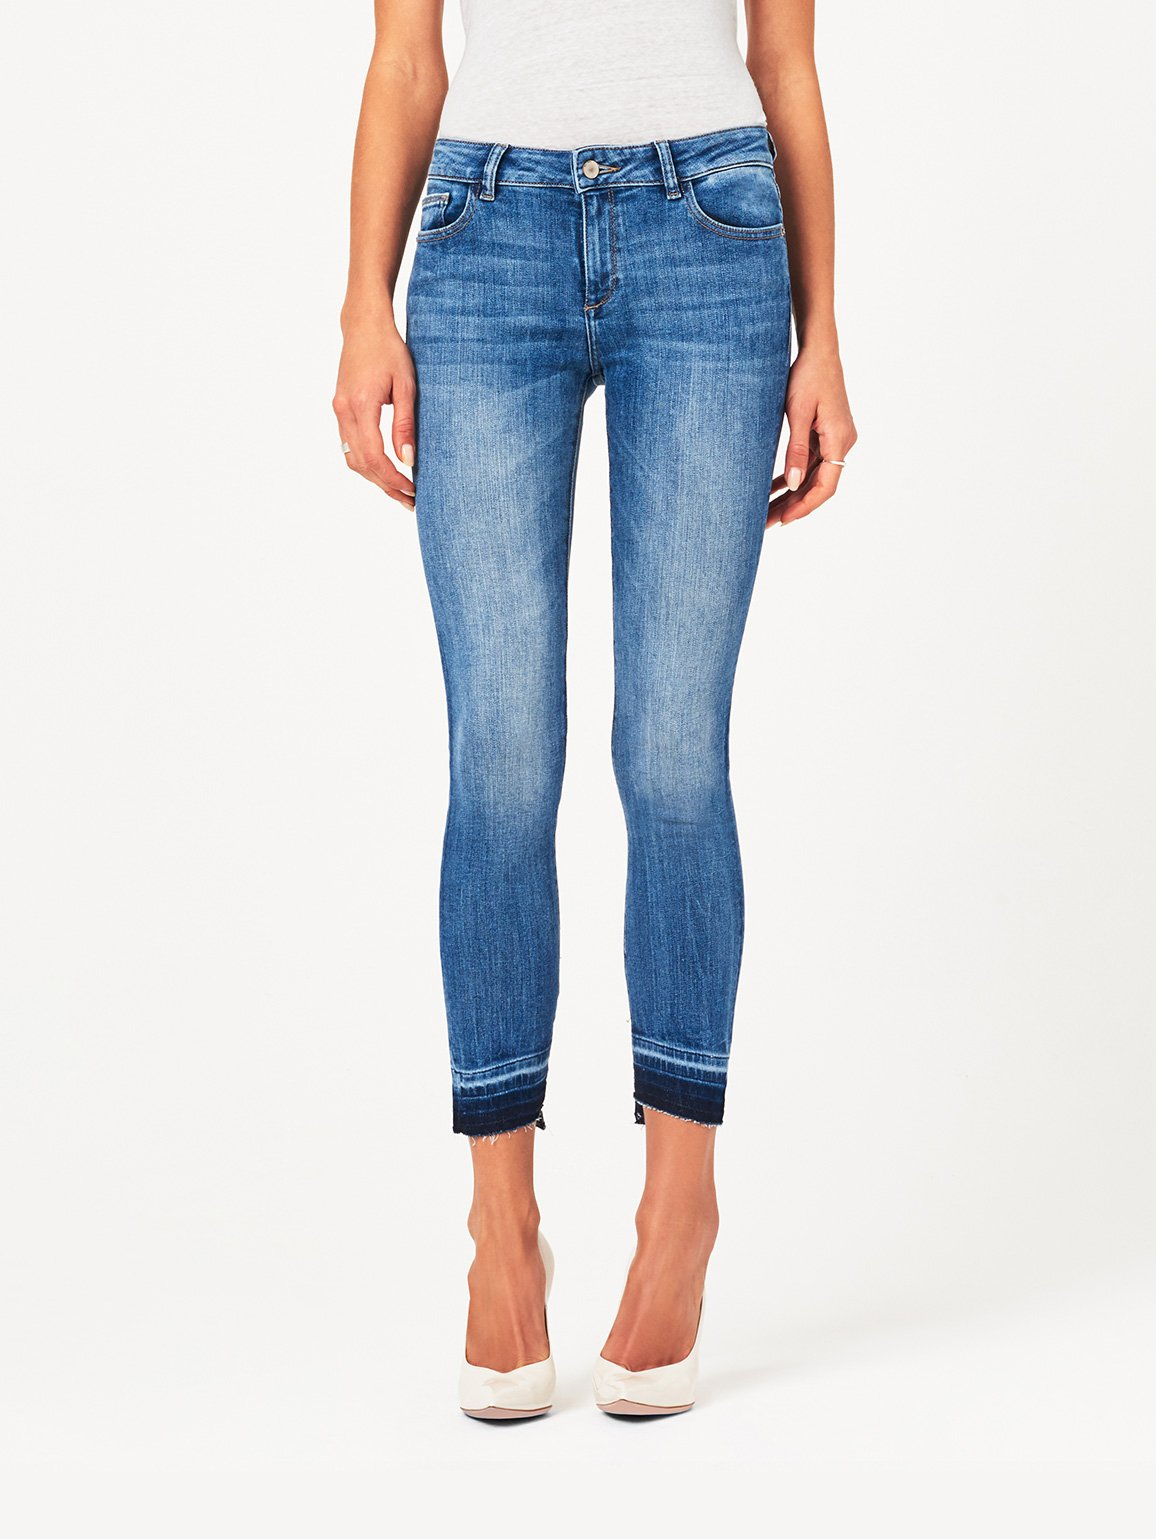 Image of Margaux Mid Rise Ankle Skinny / Costa Mesa